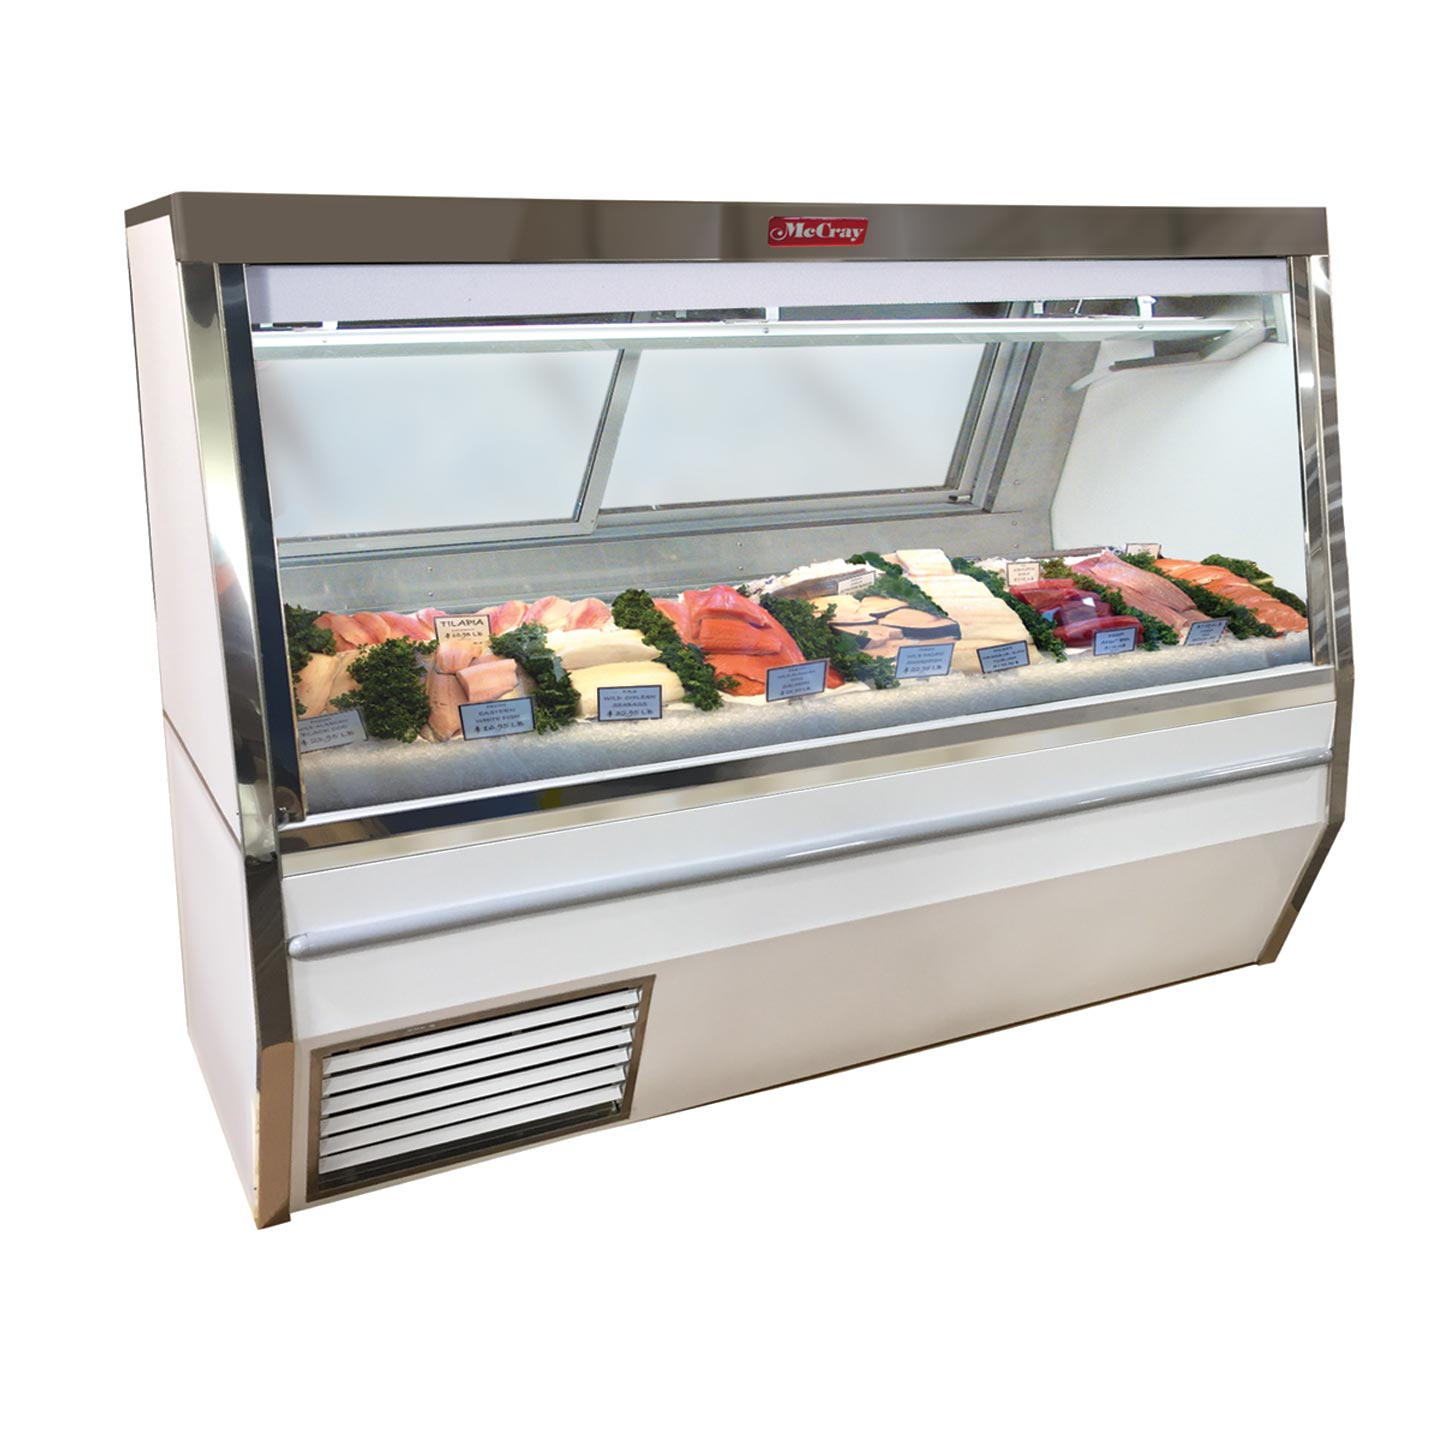 Howard-McCray R-CFS34N-4-LED display case, deli seafood / poultry